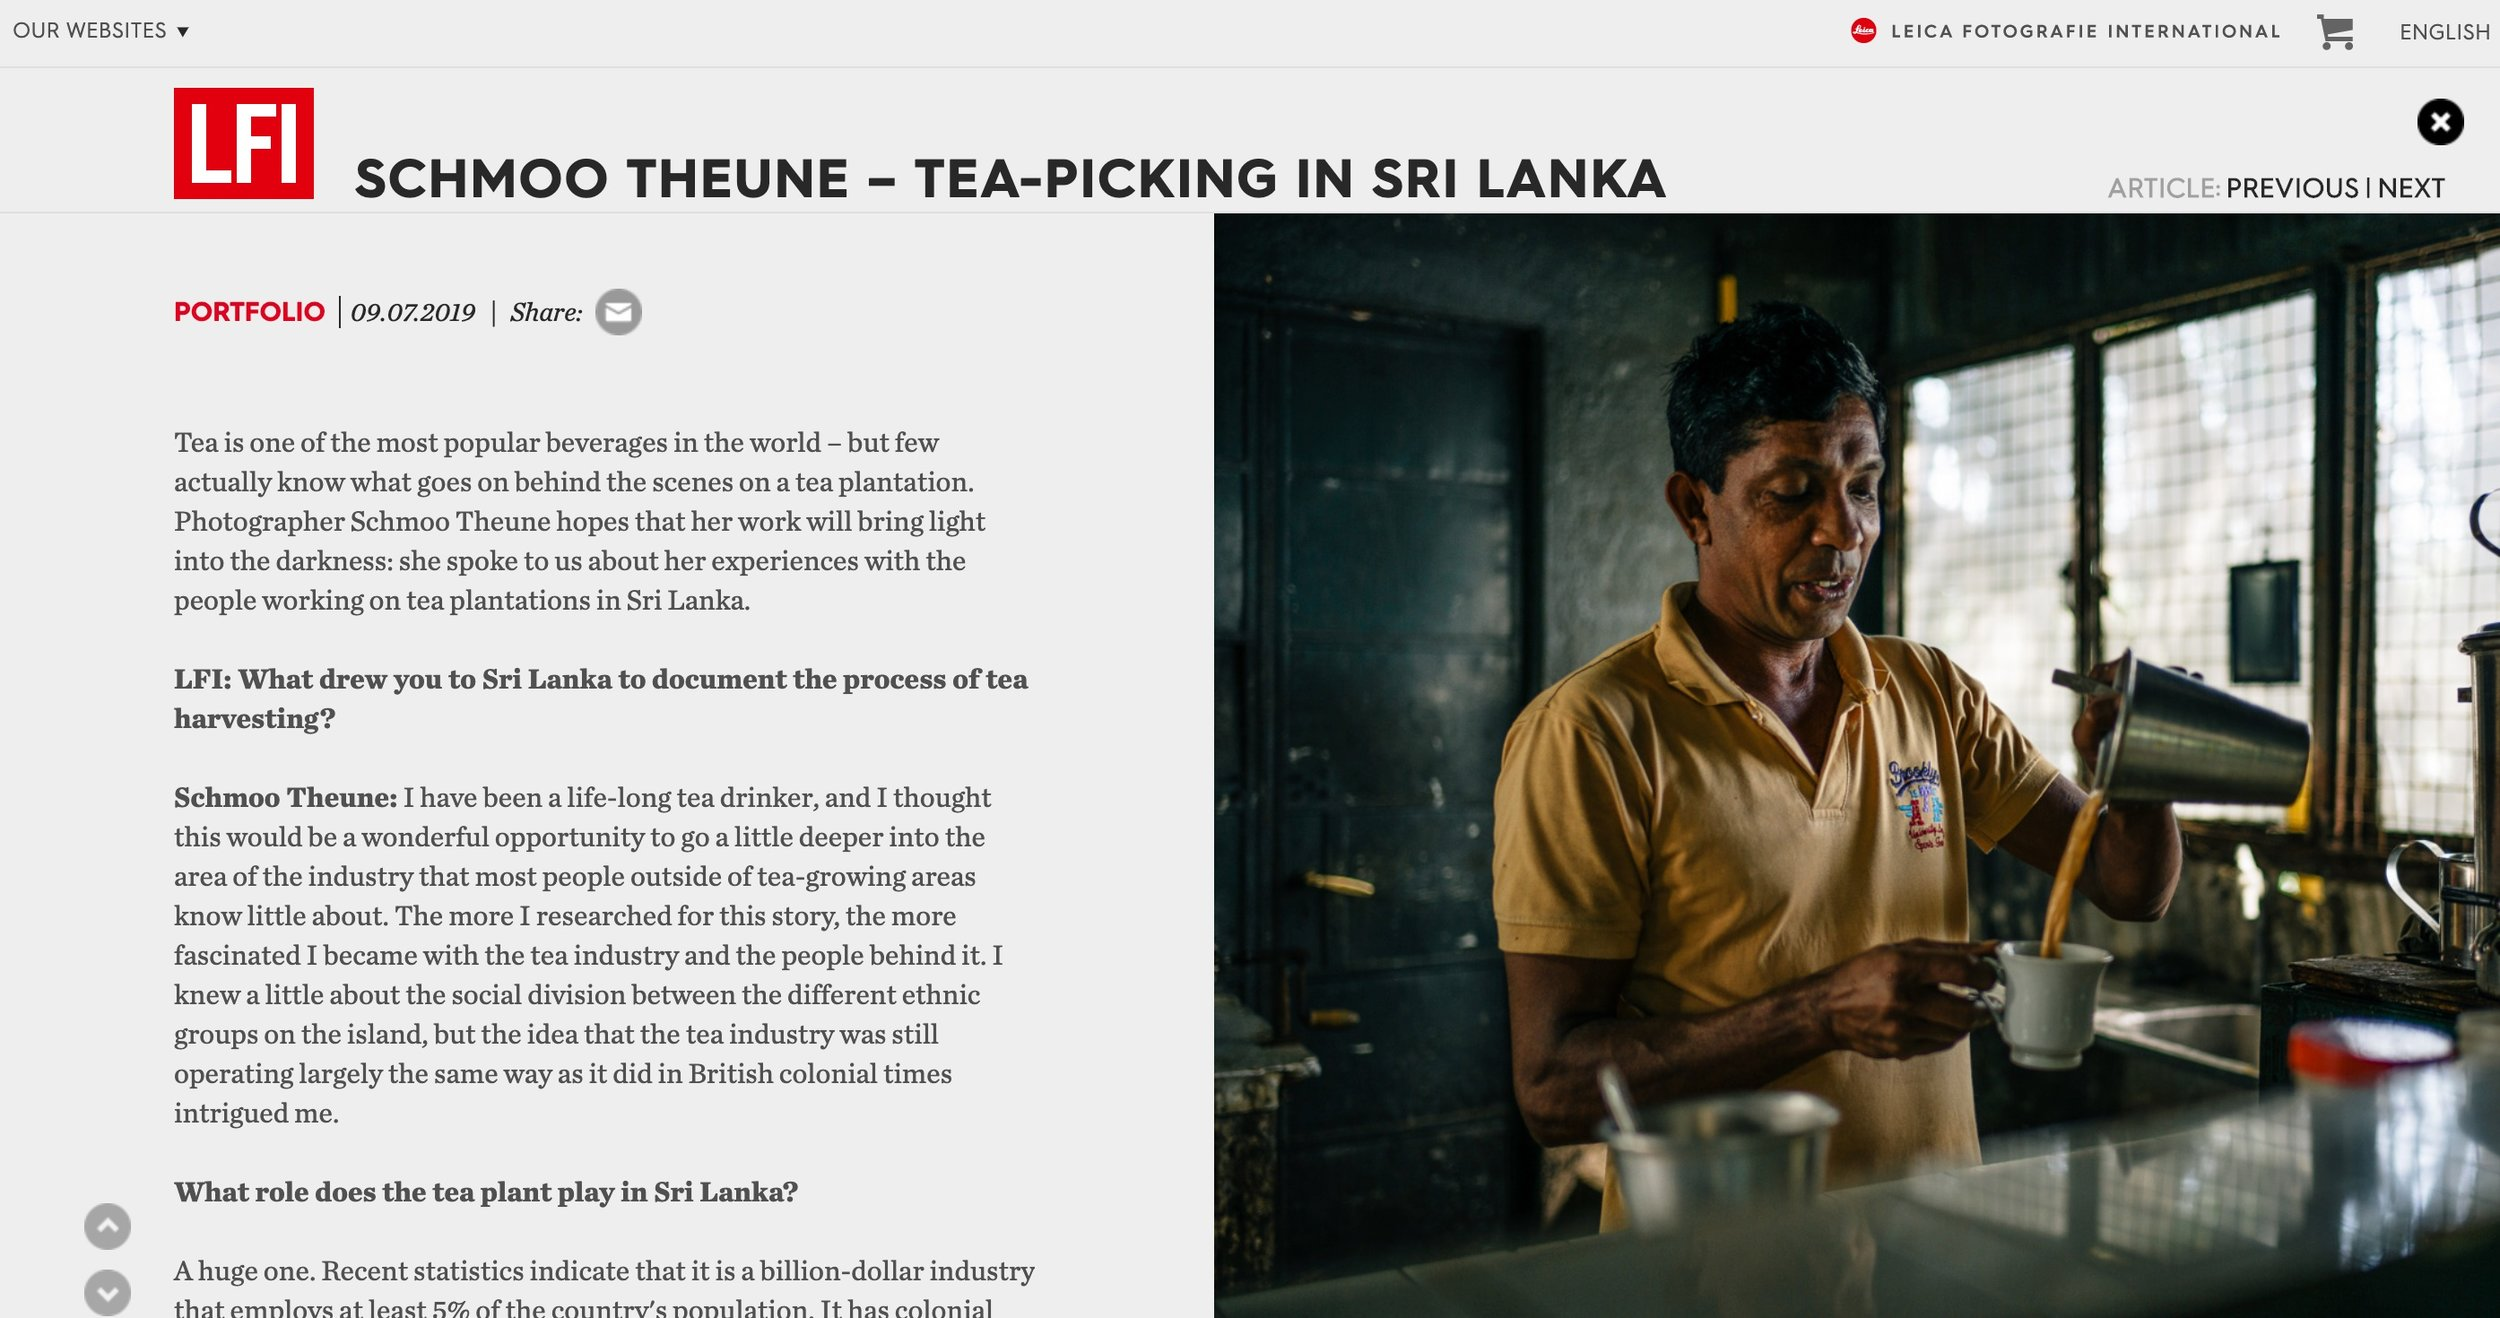 Schmoo_Theune_–_Tea-picking_in_Sri_Lanka___LFI_Blog.jpg